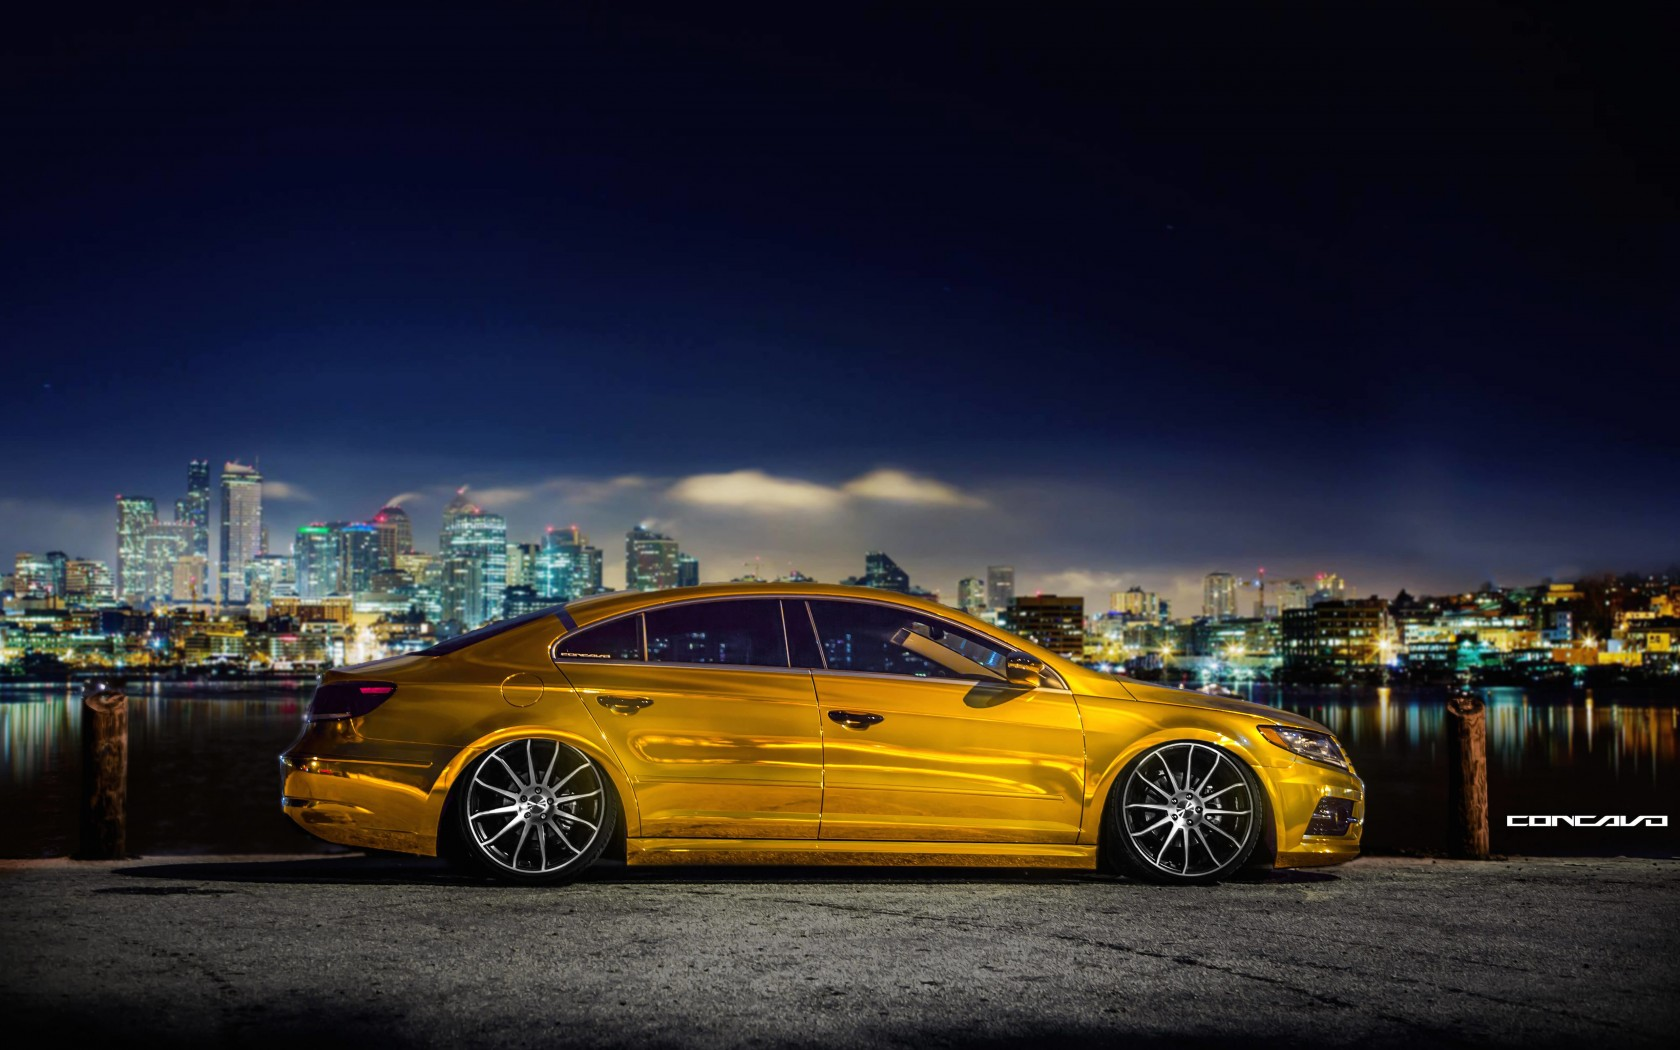 Volkswagen CC on CW-12 Concave Wheels Wallpaper for Desktop 1680x1050